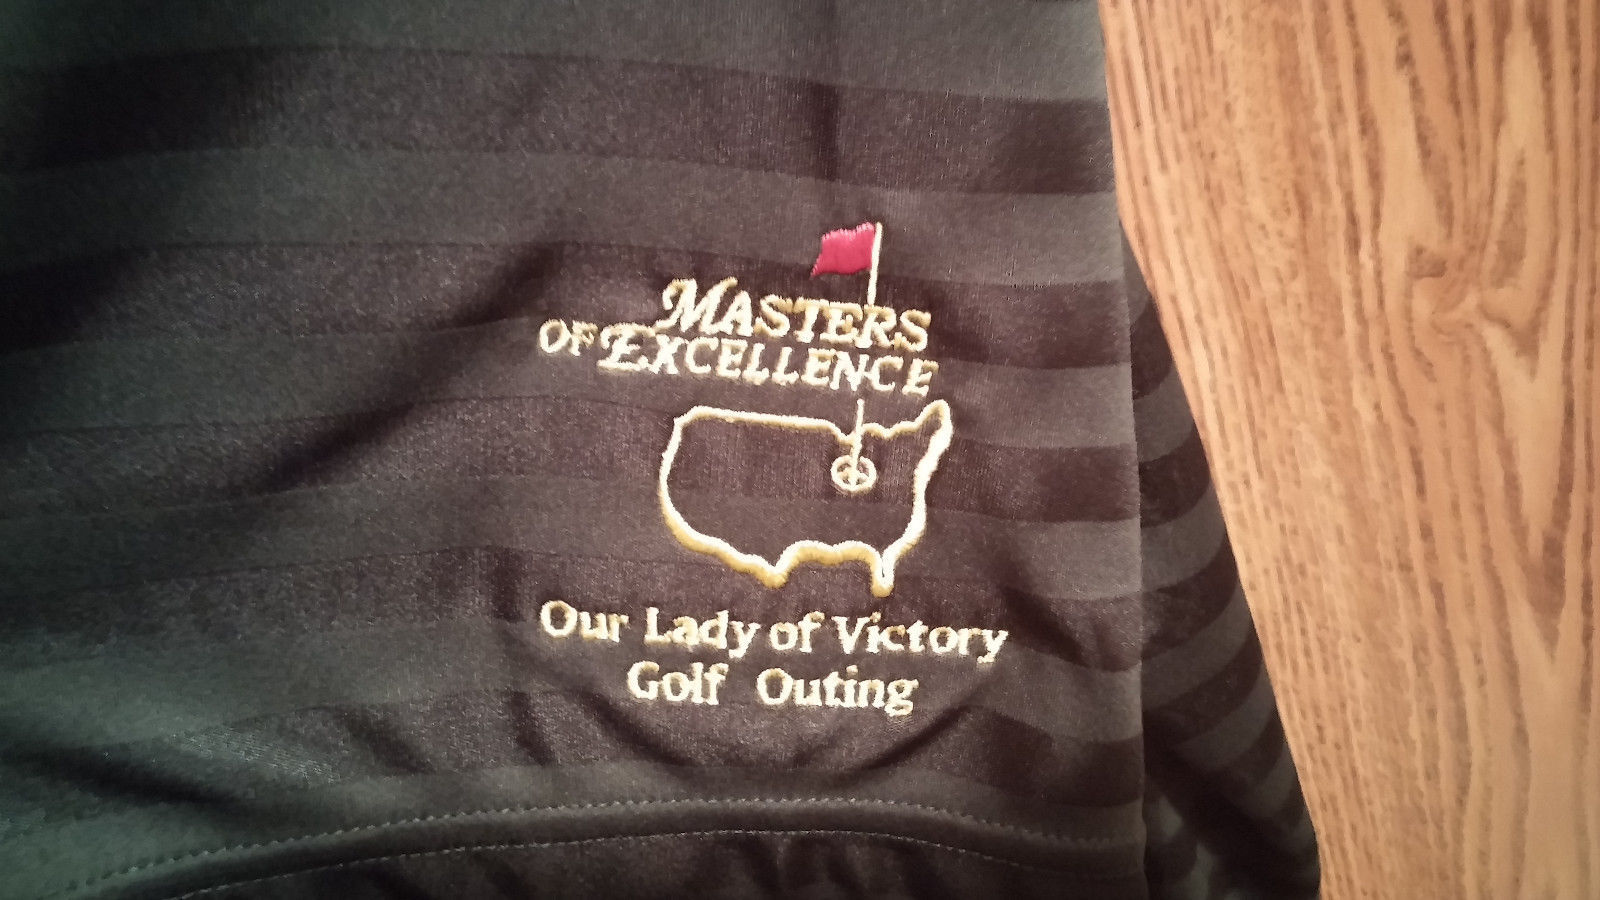 Antigua Masters of Excellence Lady of Victory Golf Shirt 2 XL Golf Outing